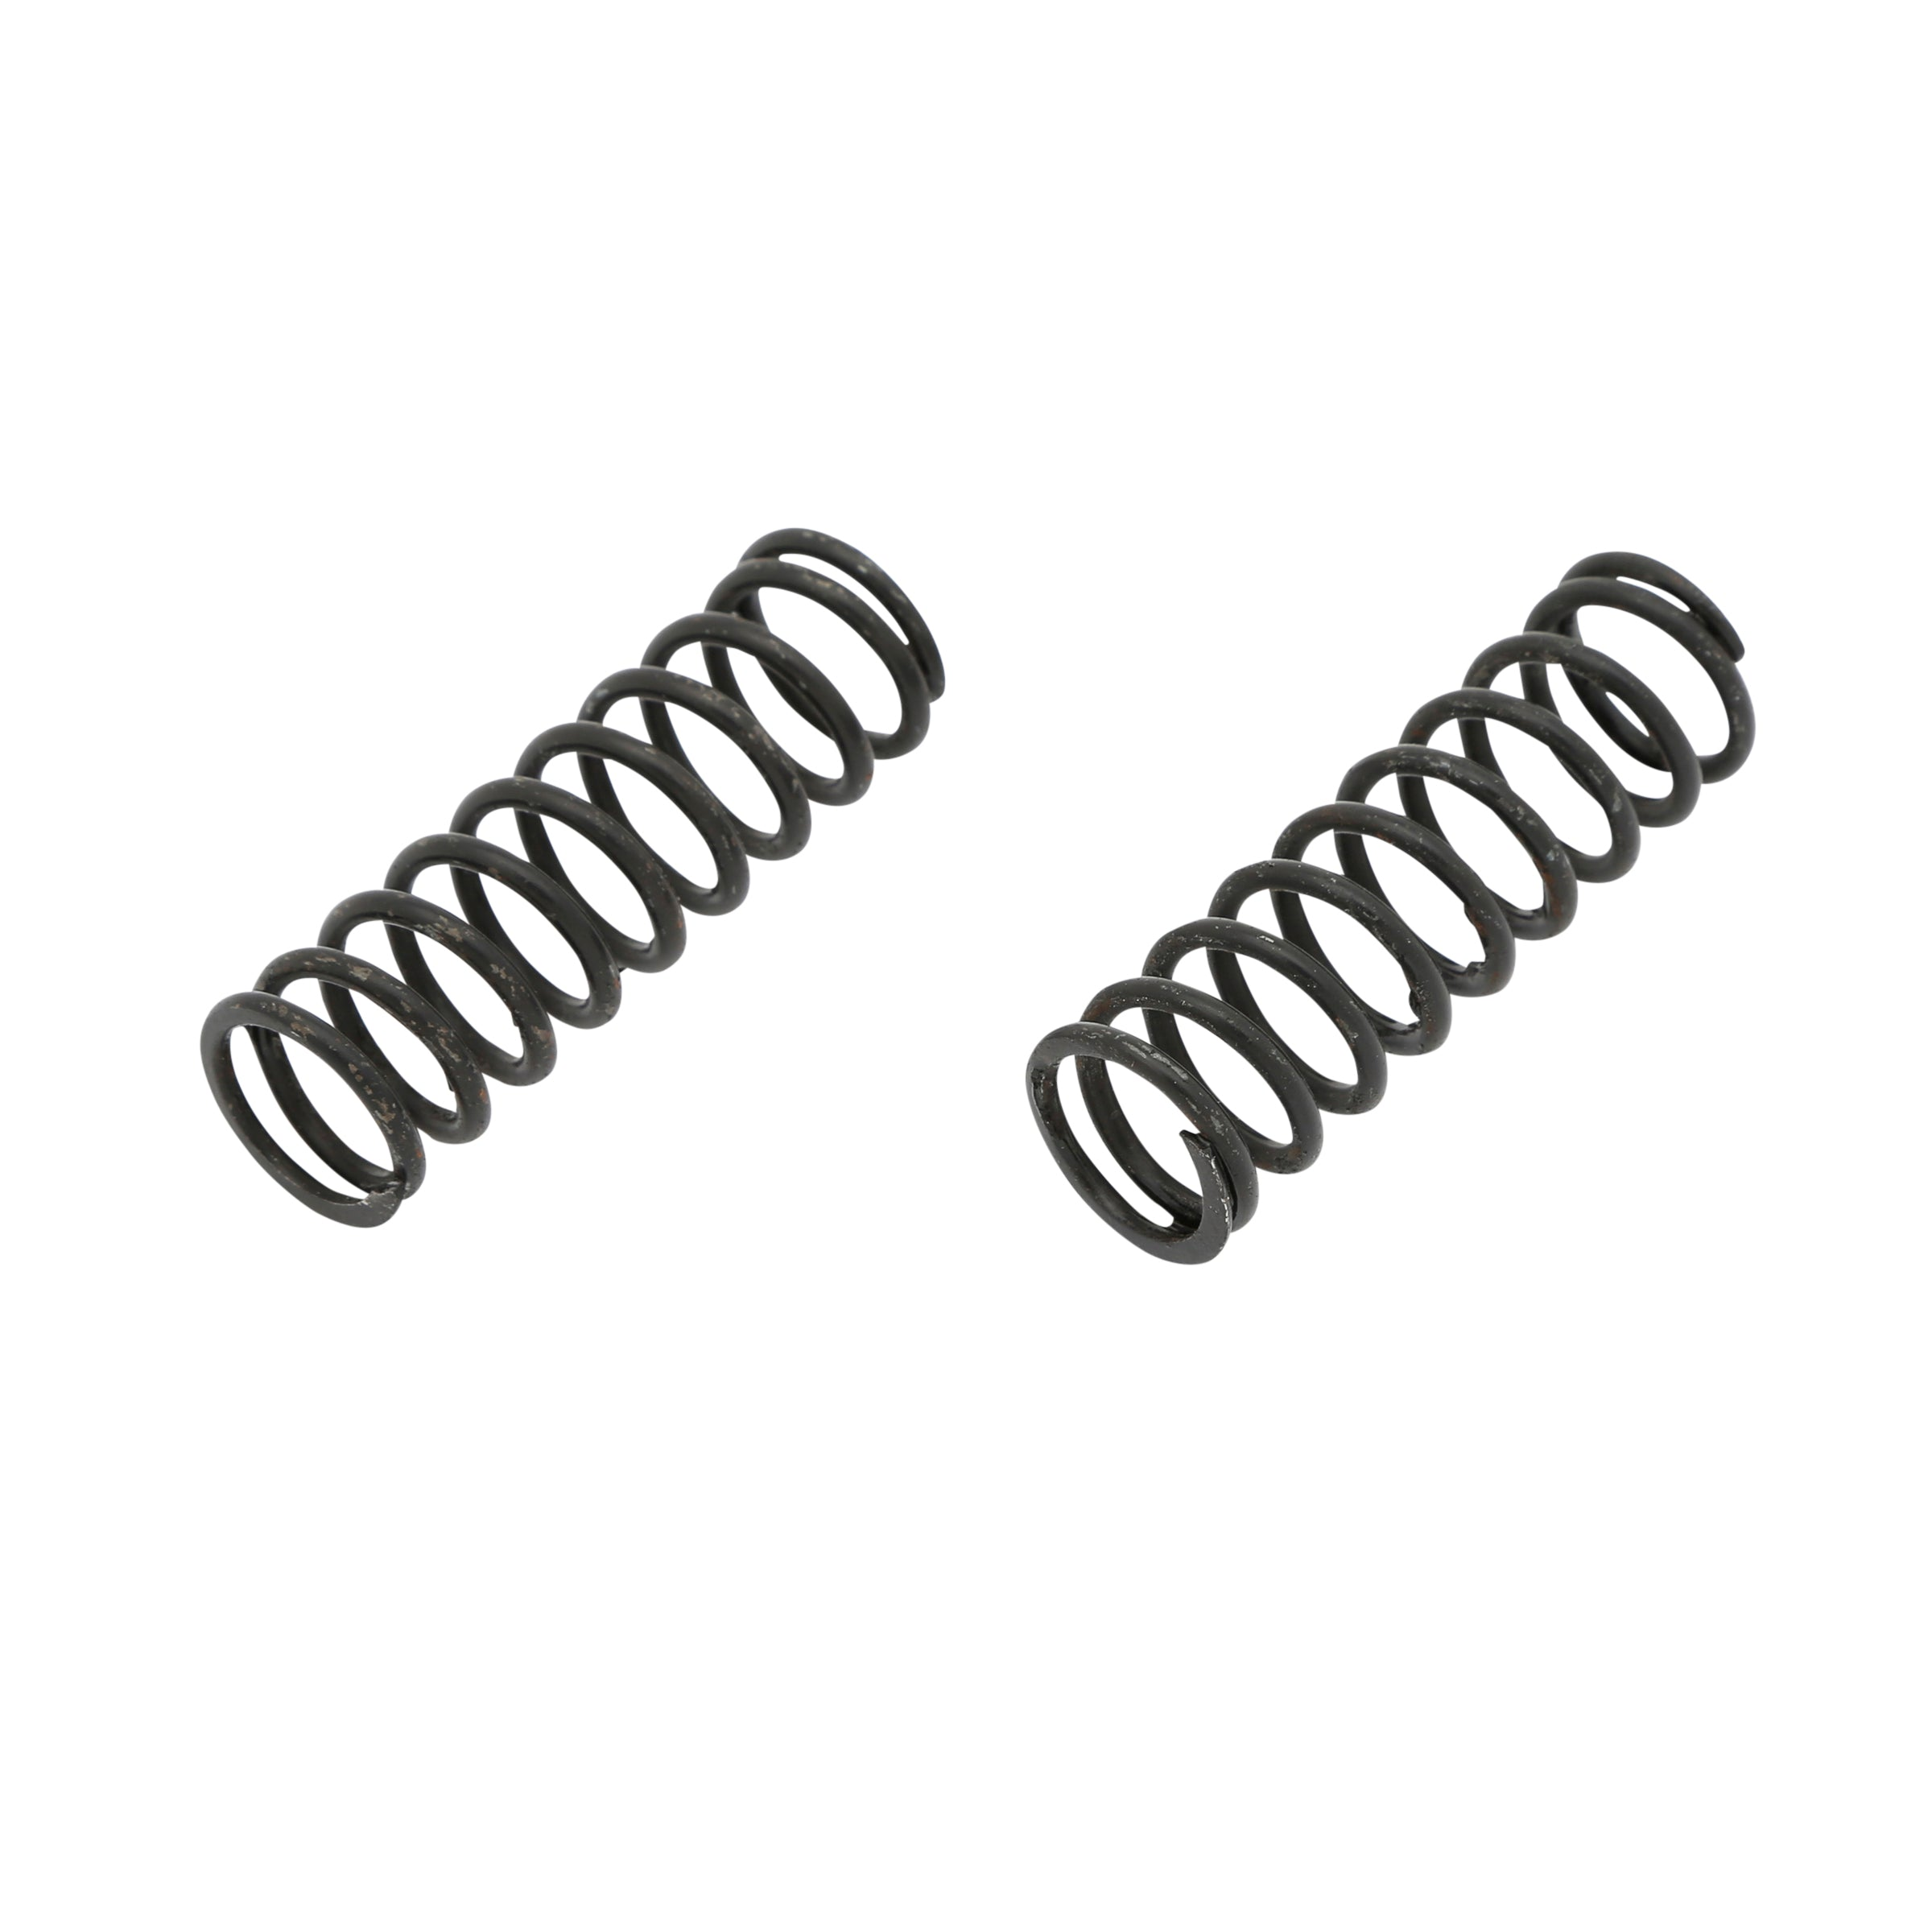 Control Rod Springs • 1928-31 Model A Ford